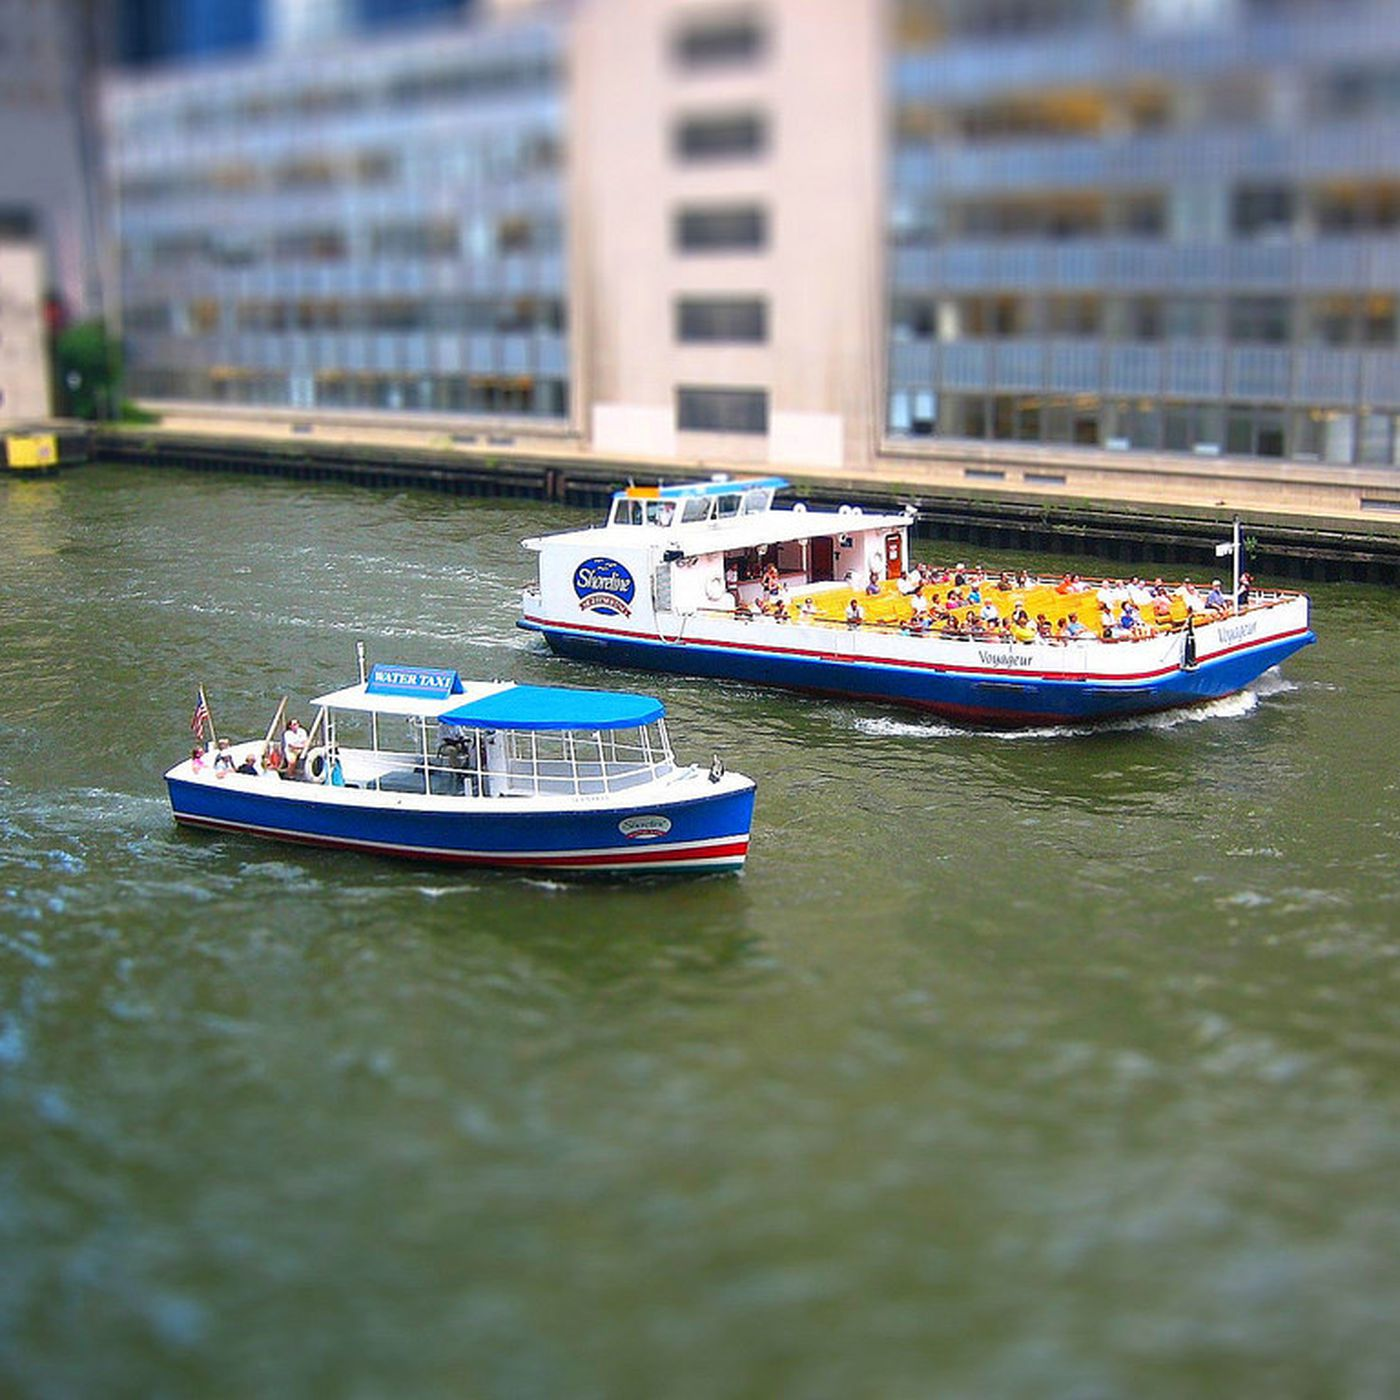 Architecture Boat Tour   Chicago S Architectural River Cruise Named Most Popular Tour